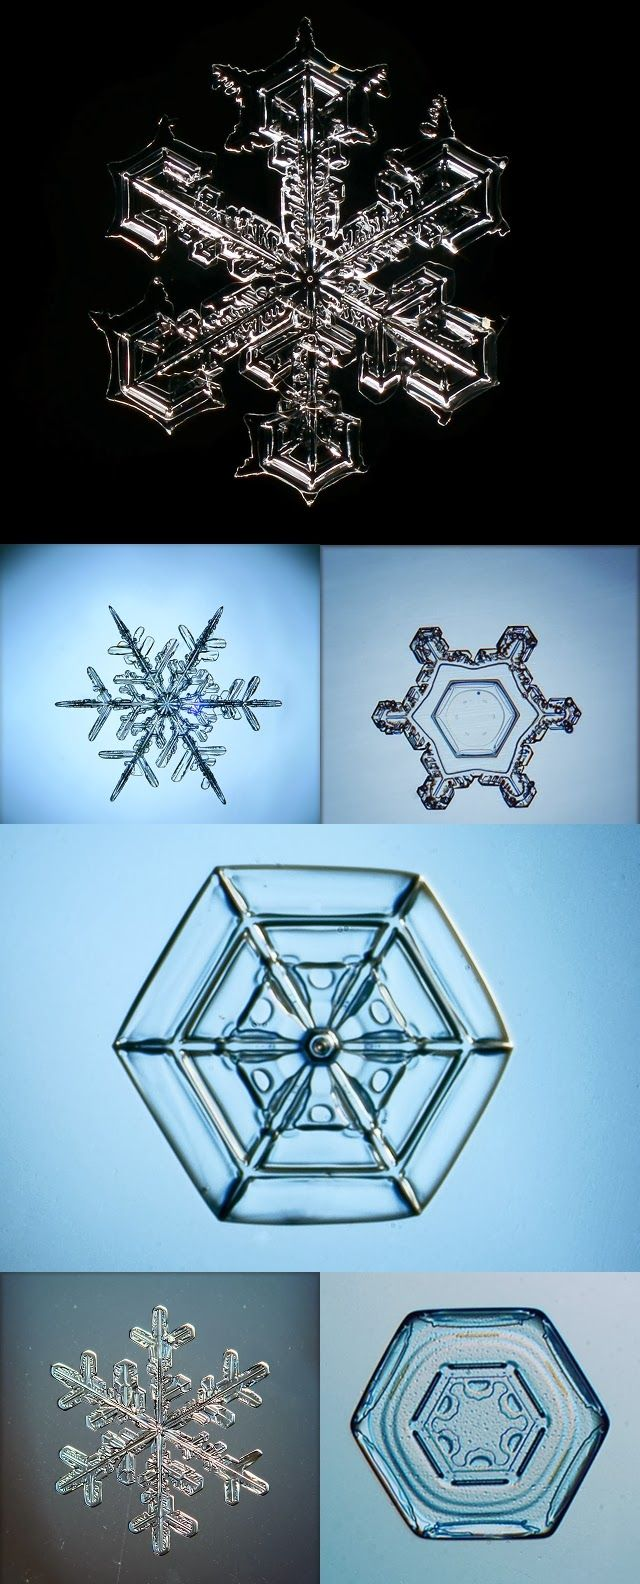 Macro snowflake photos by Sergey Kichigin Snowflake photography is SO beautiful!